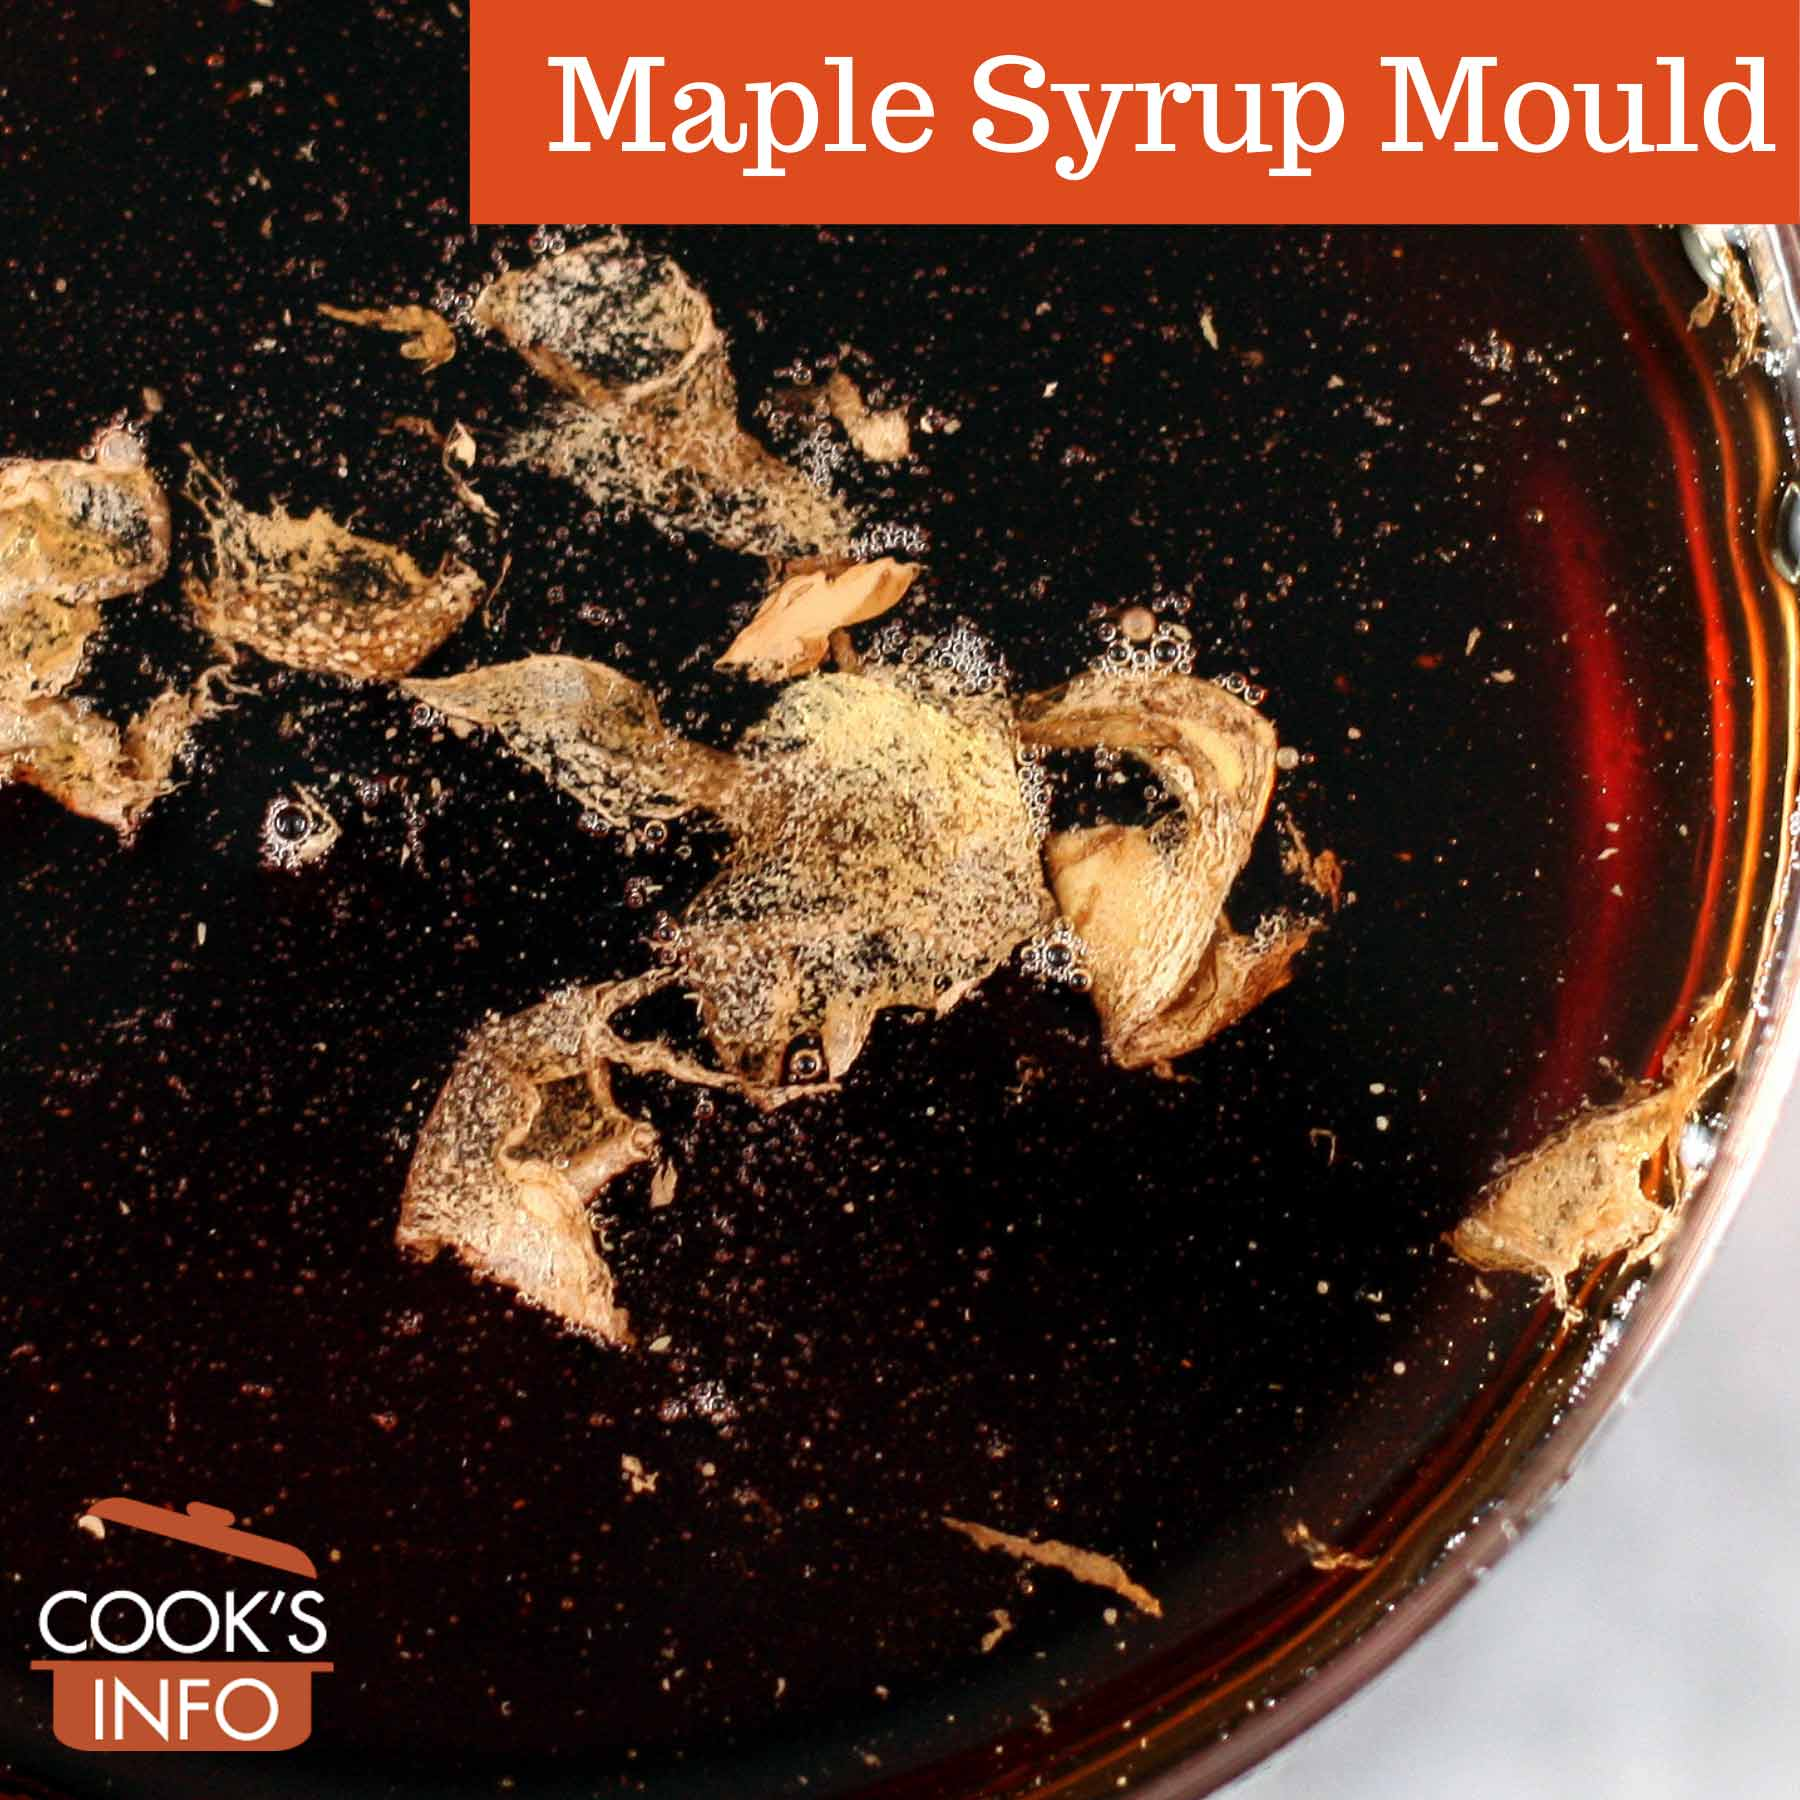 Maple syrup mould